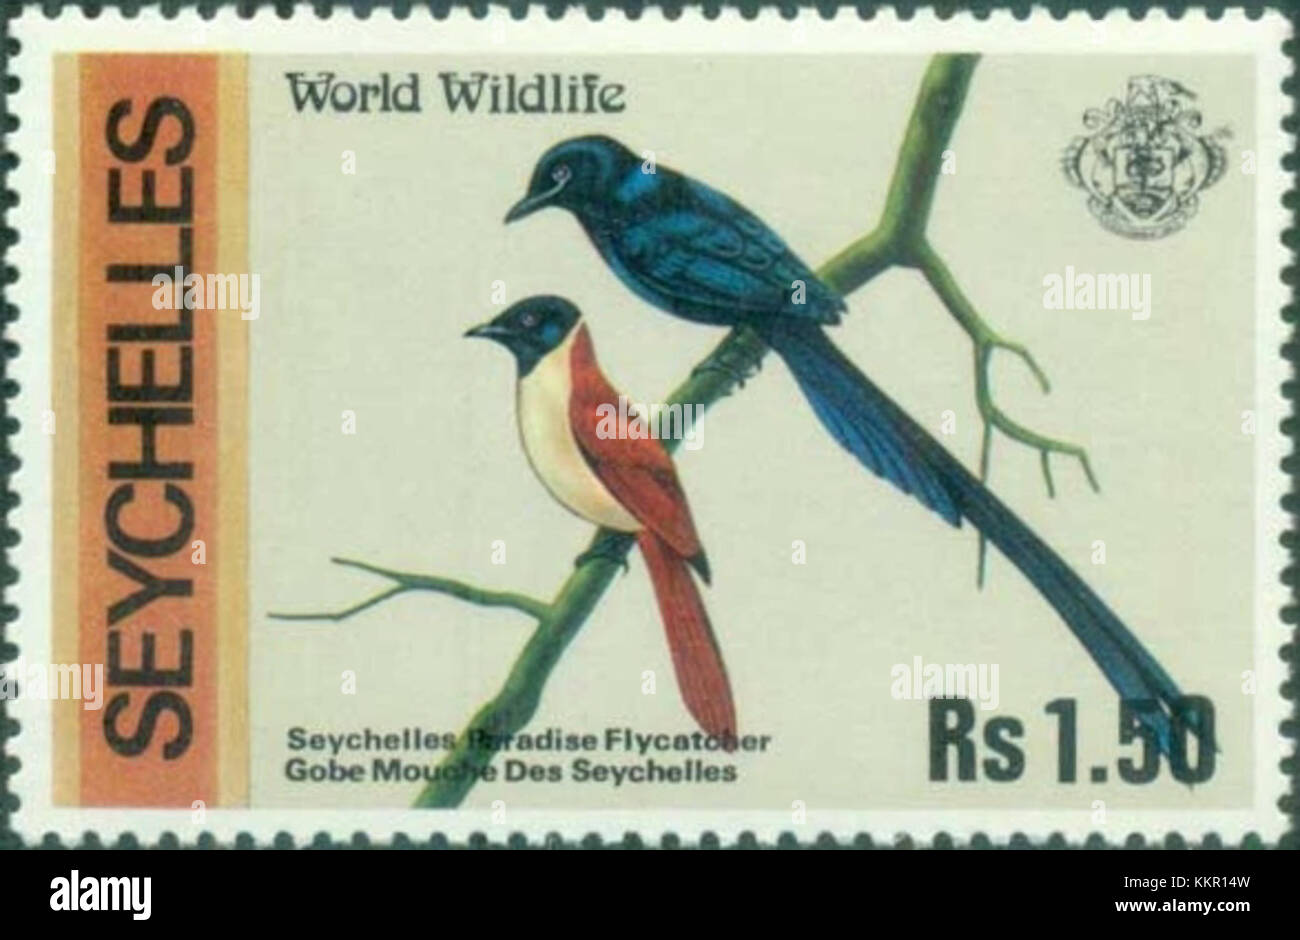 Seychelles paradise flycatcher 1978 stamp Stock Photo